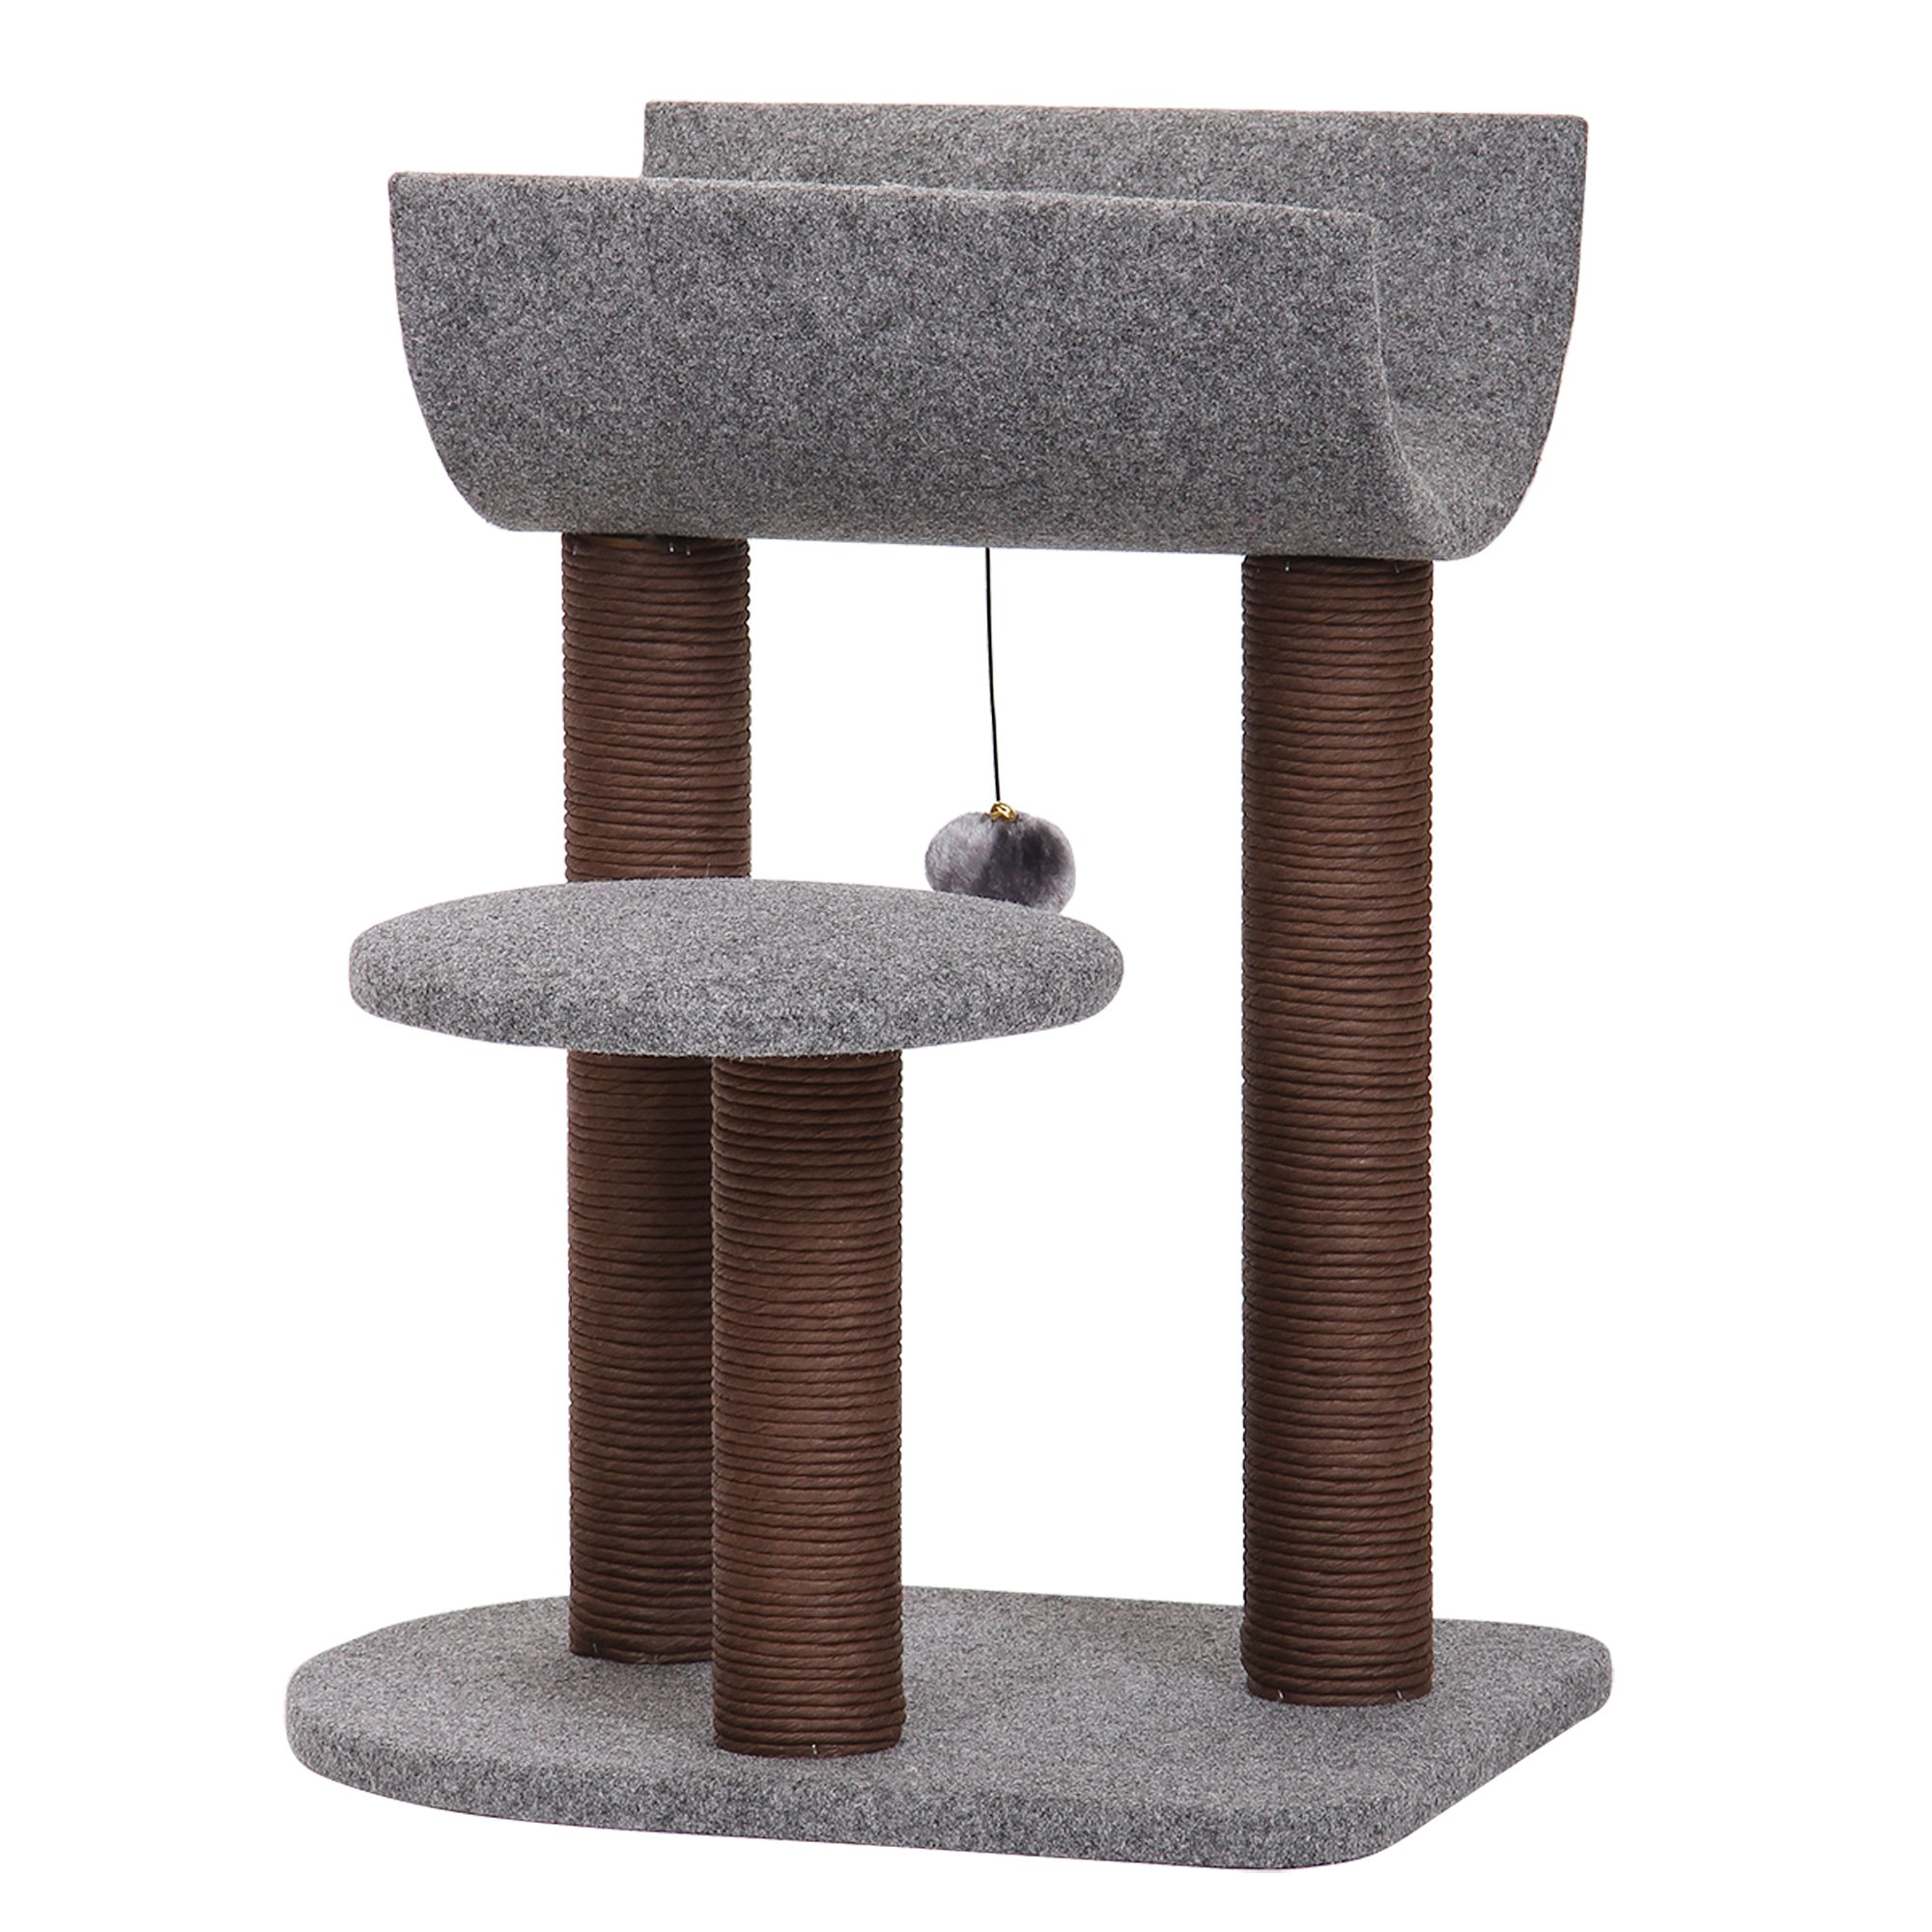 PetPals Tower Activity Scratching Postsand